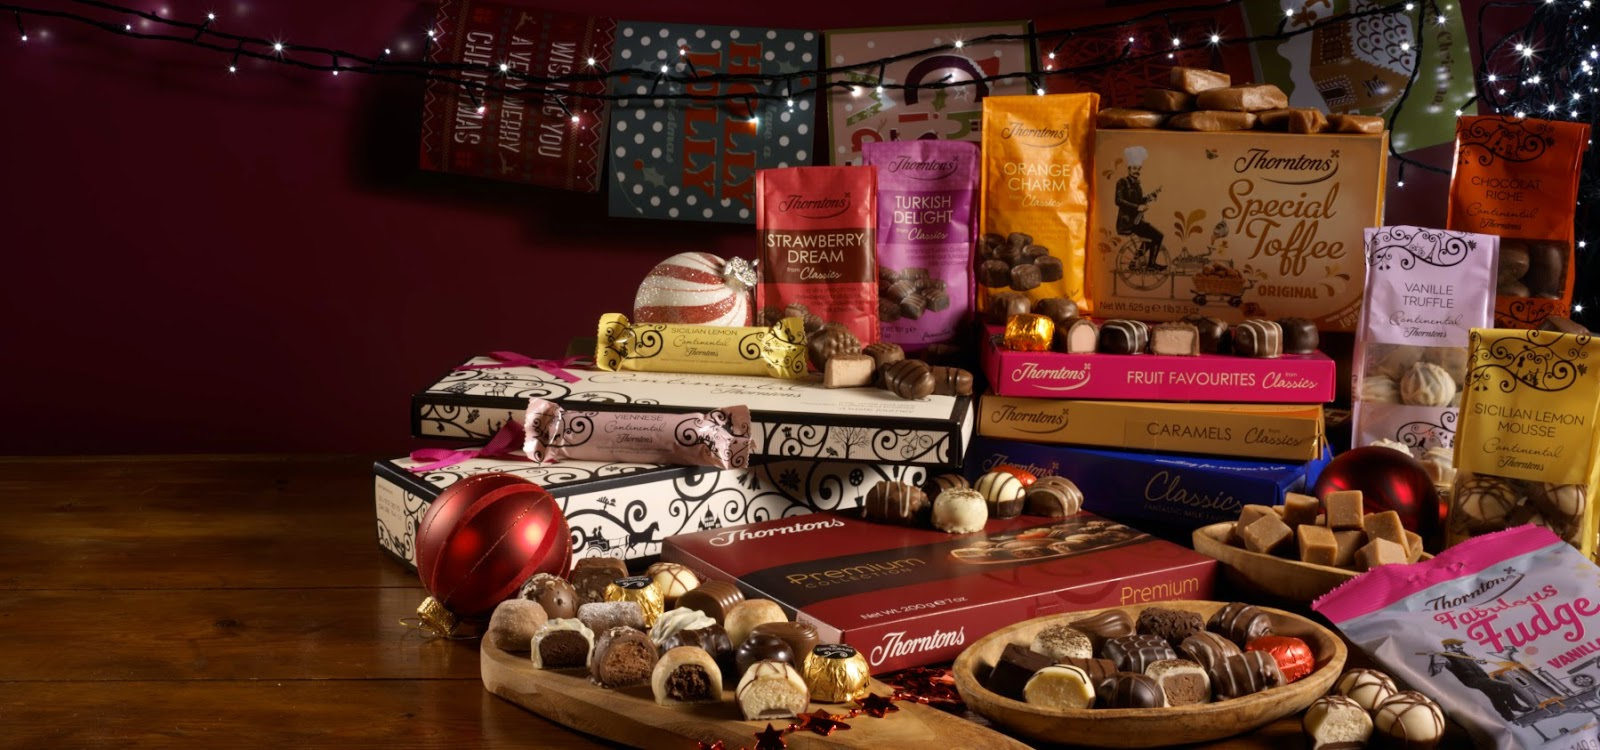 Thorntons Chocolate Giveaway